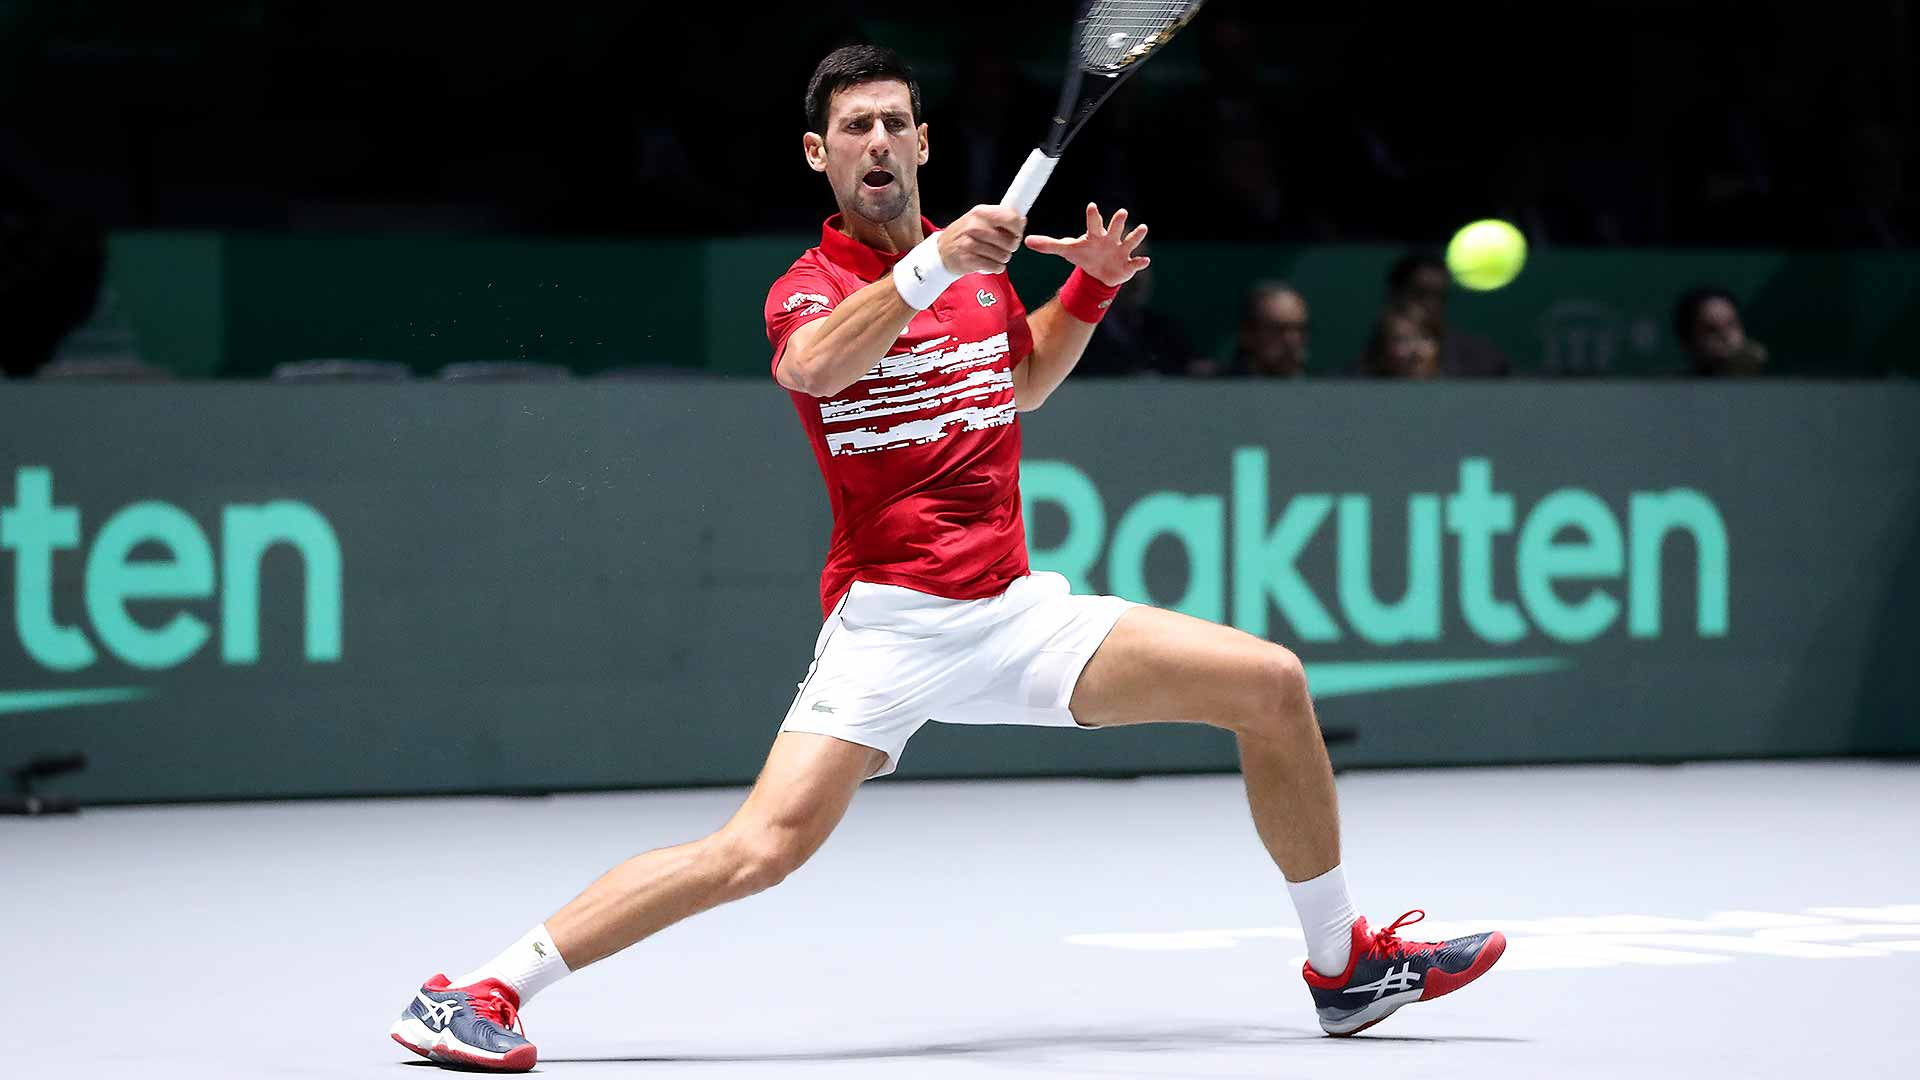 Novak Djokovic and Serbia are going for their second Davis Cup title (2010) this week in Madrid.